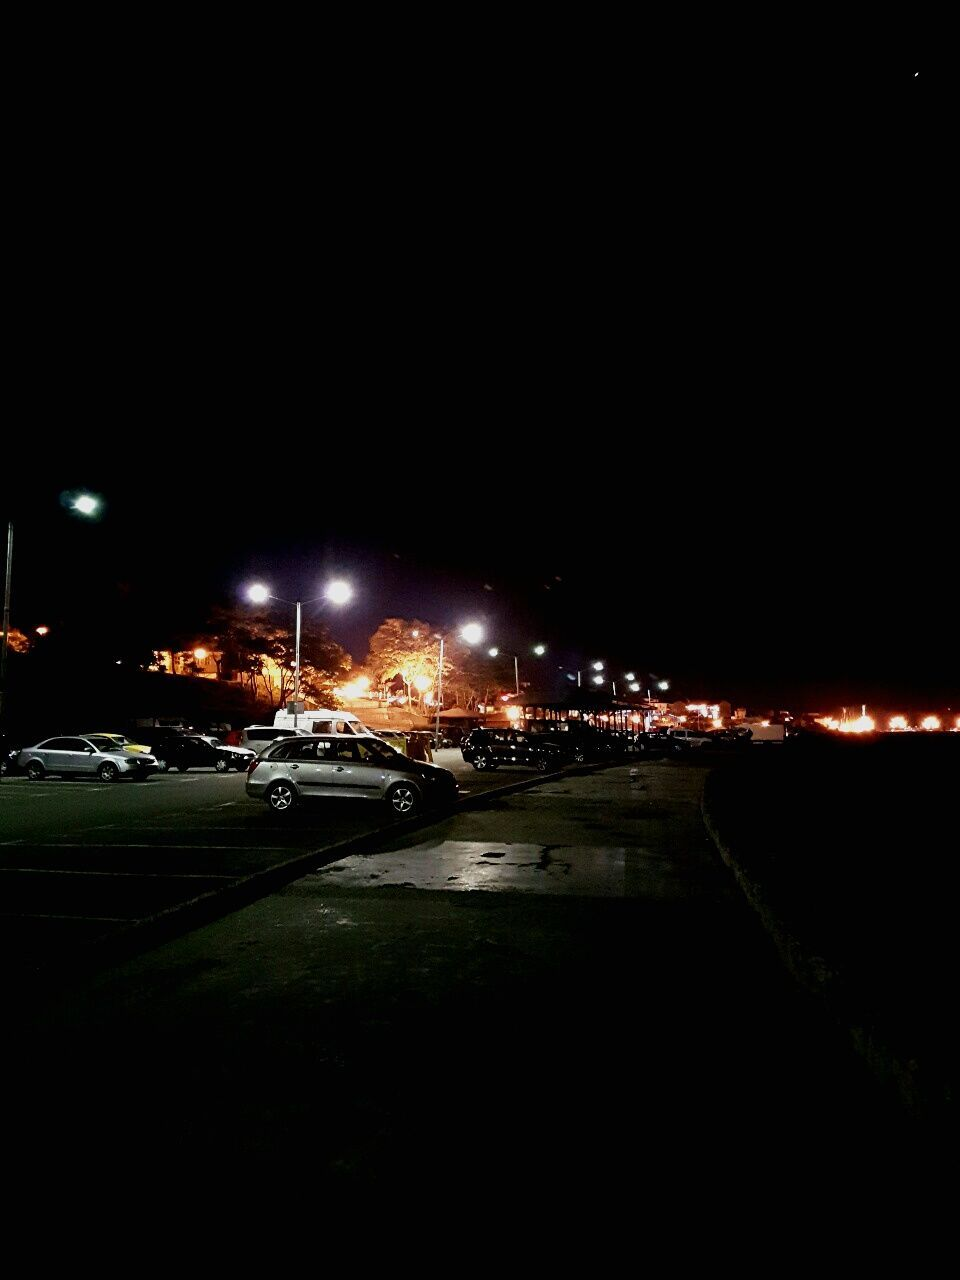 night, illuminated, copy space, car, no people, transportation, outdoors, built structure, road, building exterior, architecture, city, sky